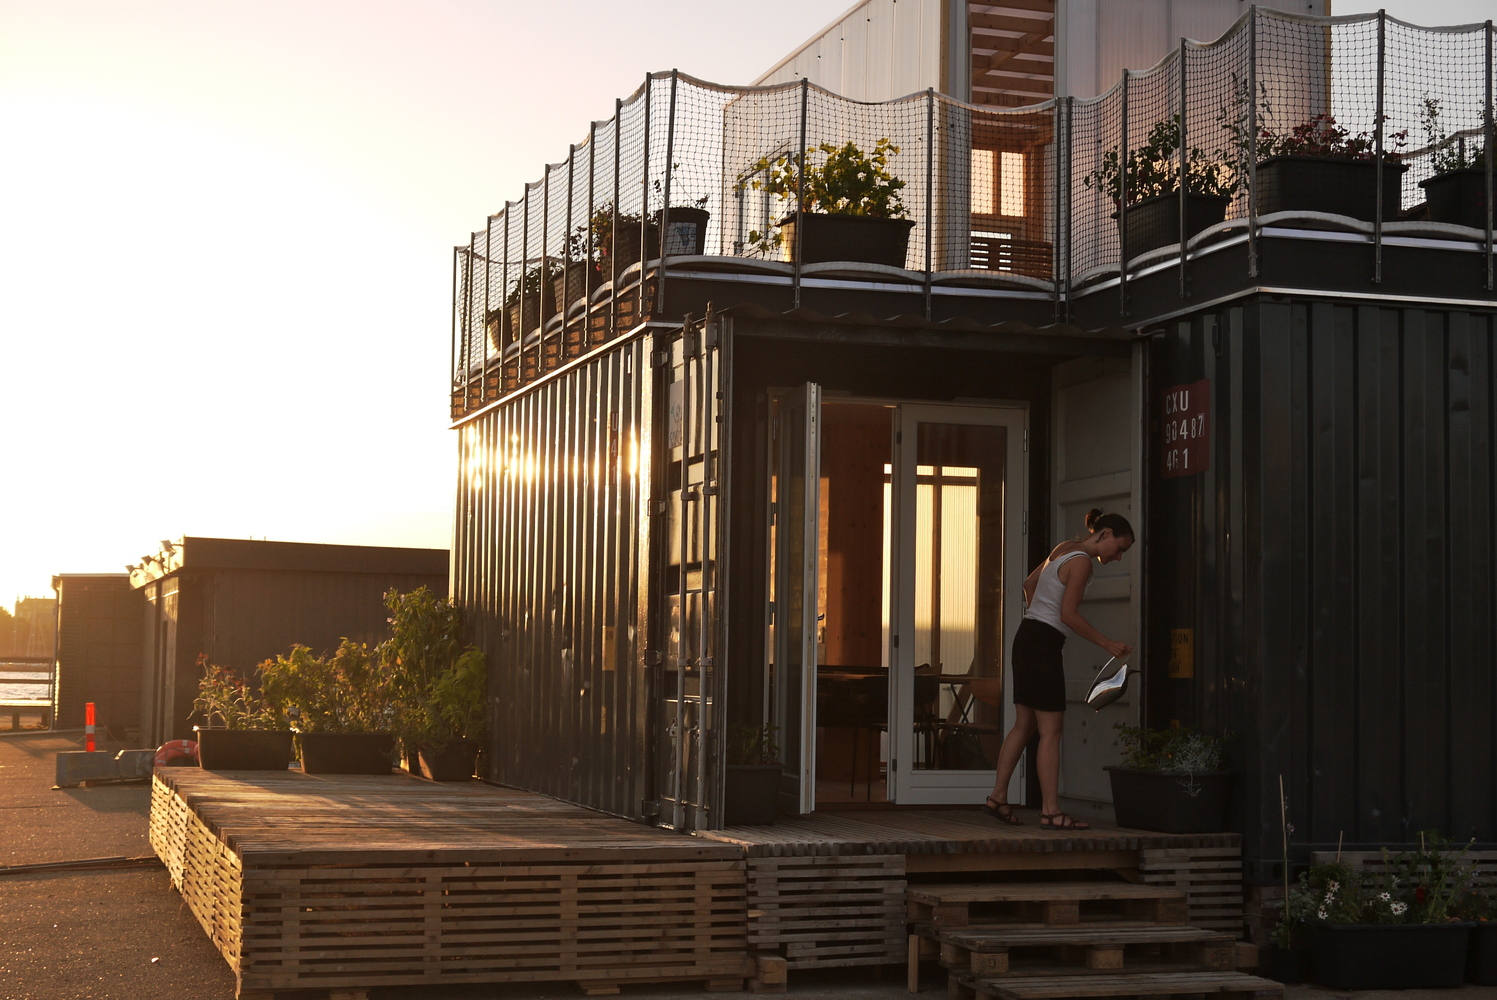 Shipping Container Student Housing in Copenhagen - Exterior at Sunset